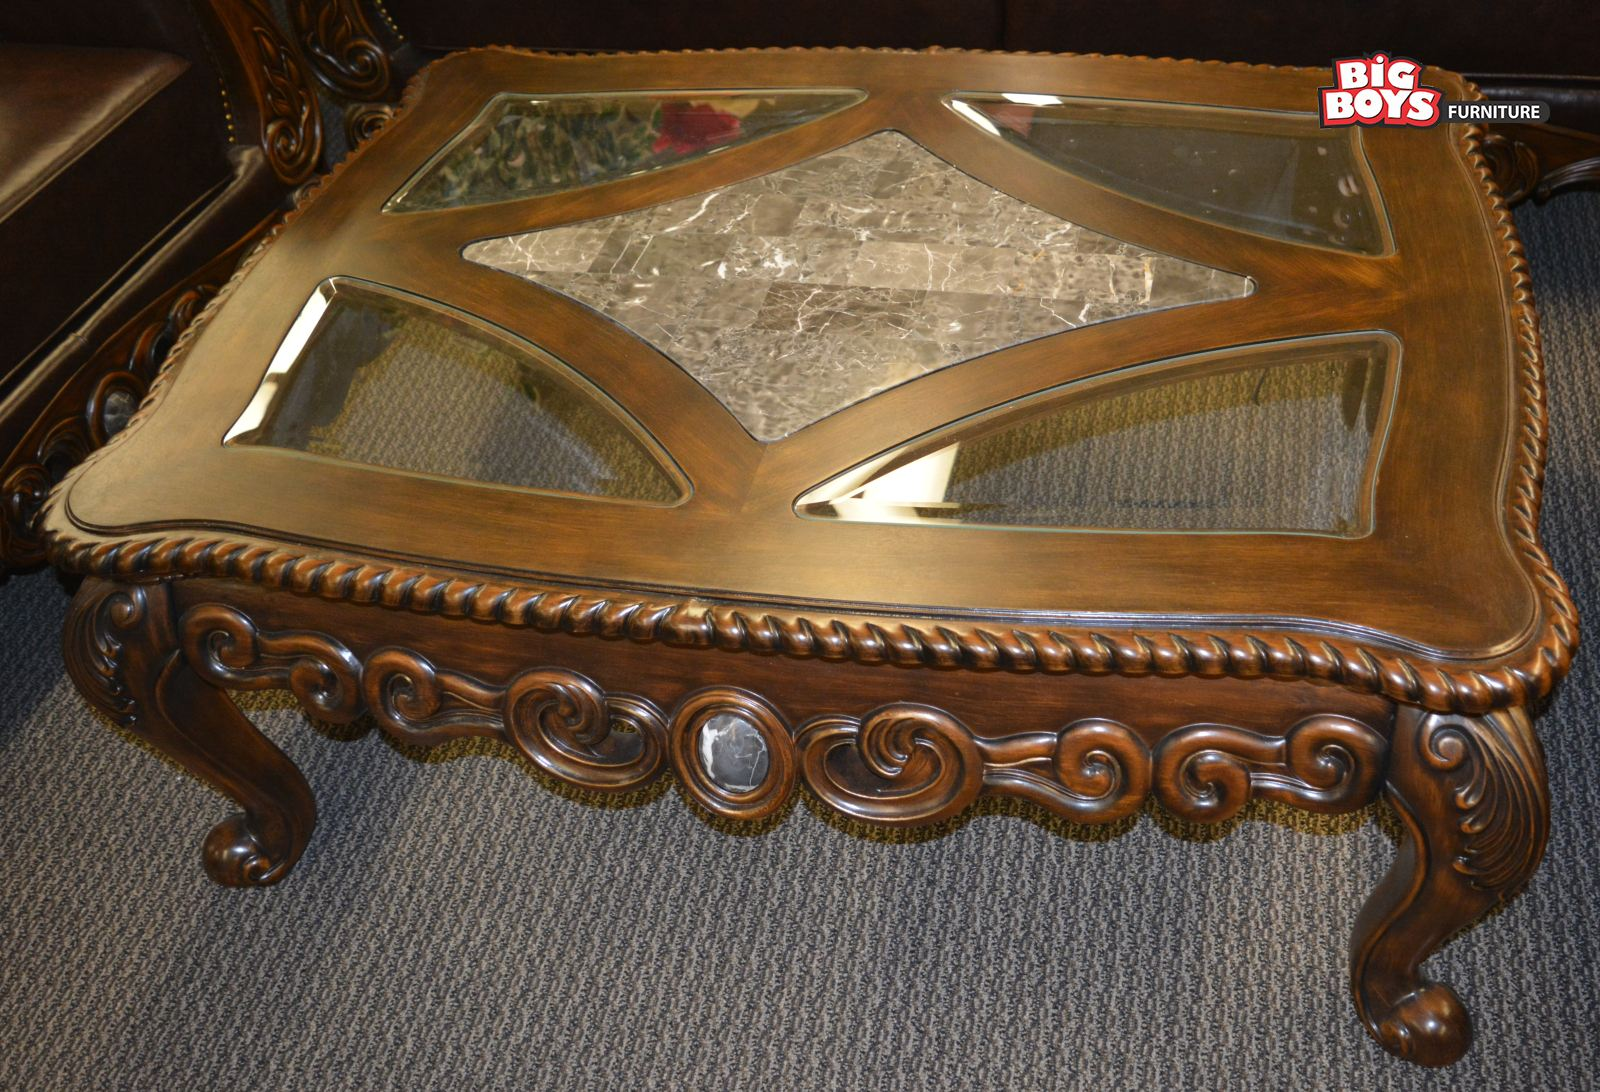 Vast Variety of Center tables and Coffee tables